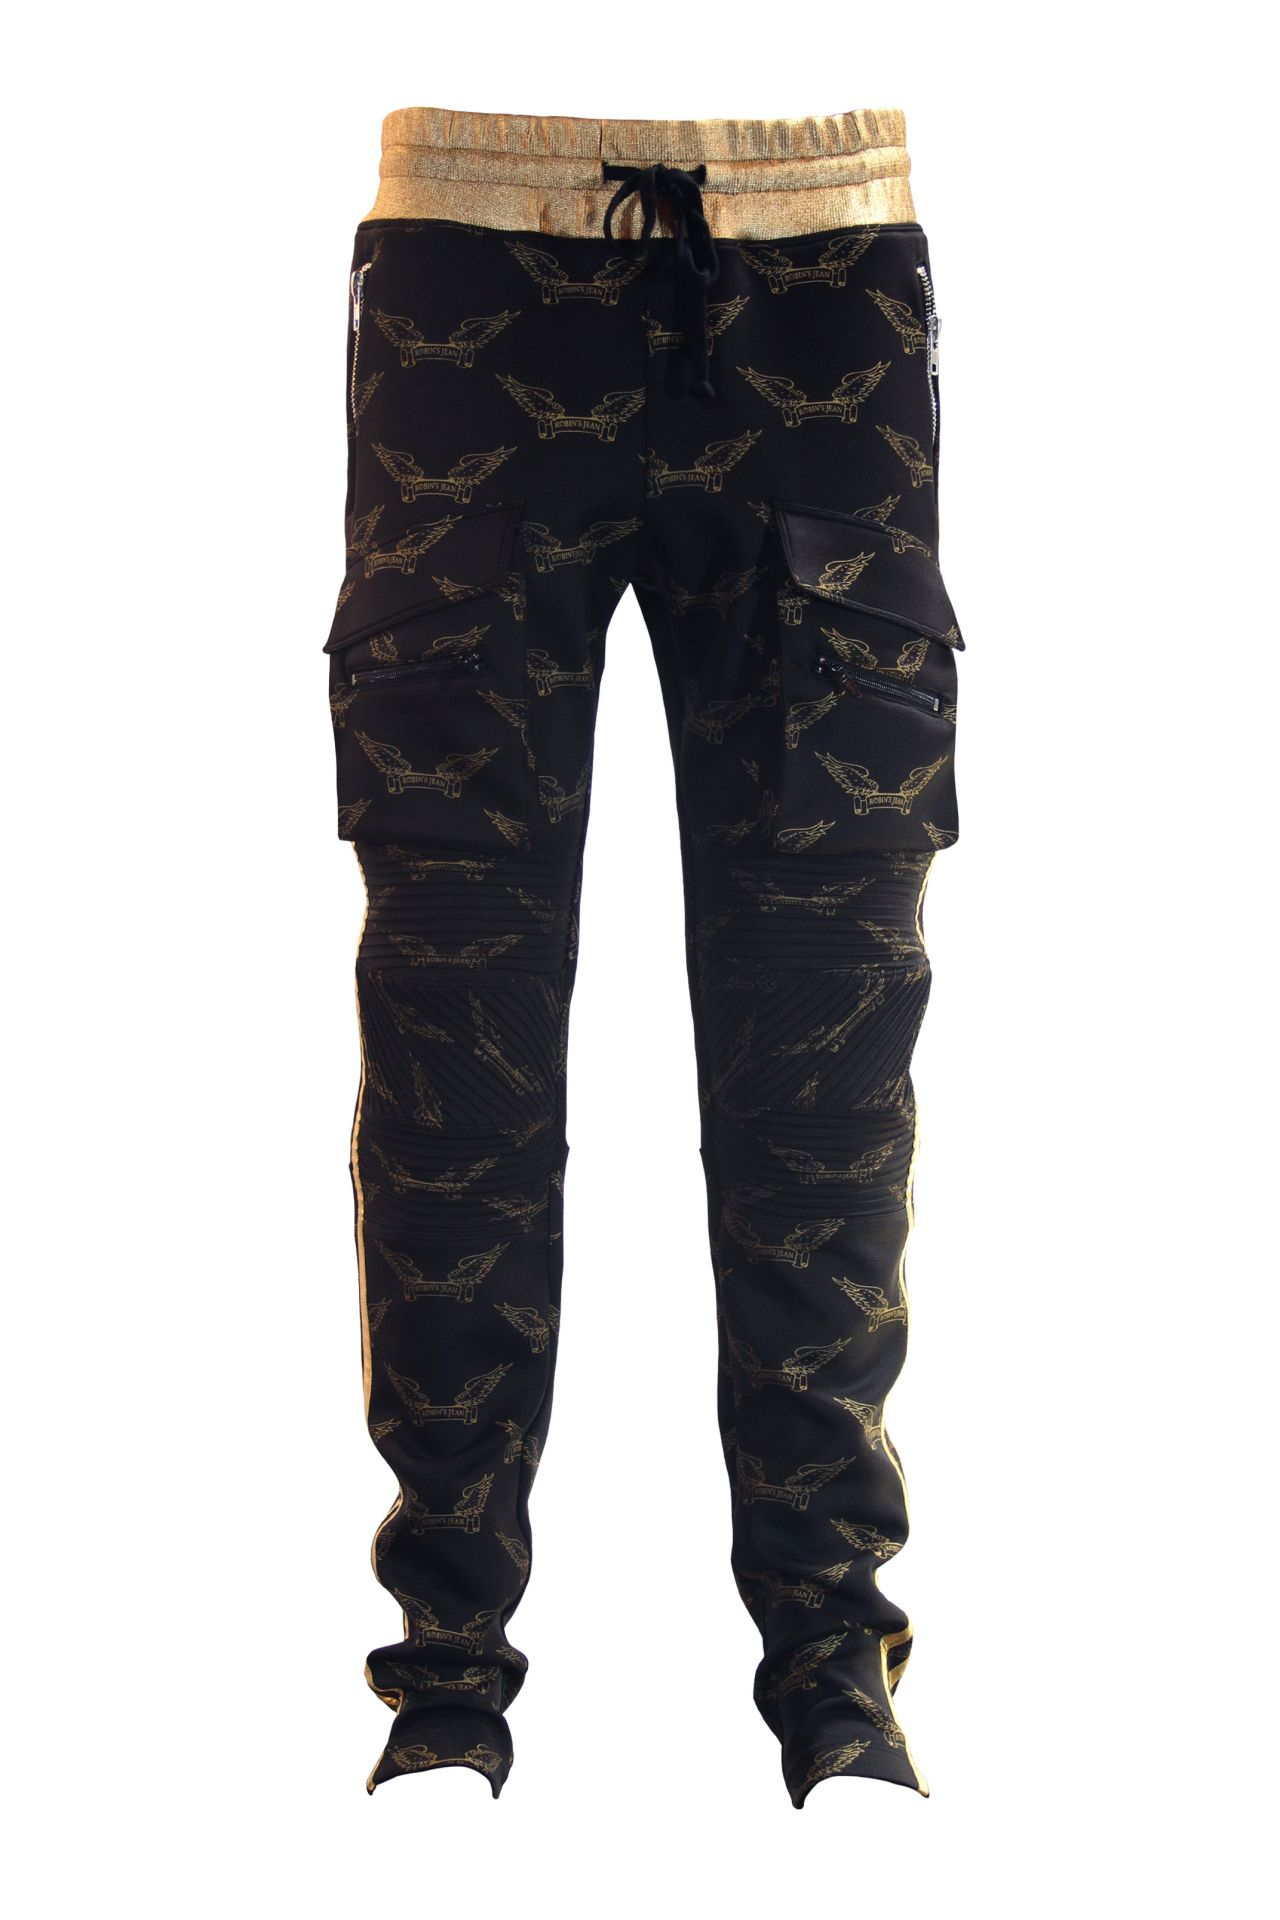 ROBIN'S MONOGRAM JOGGER IN BLACK AND GOLD